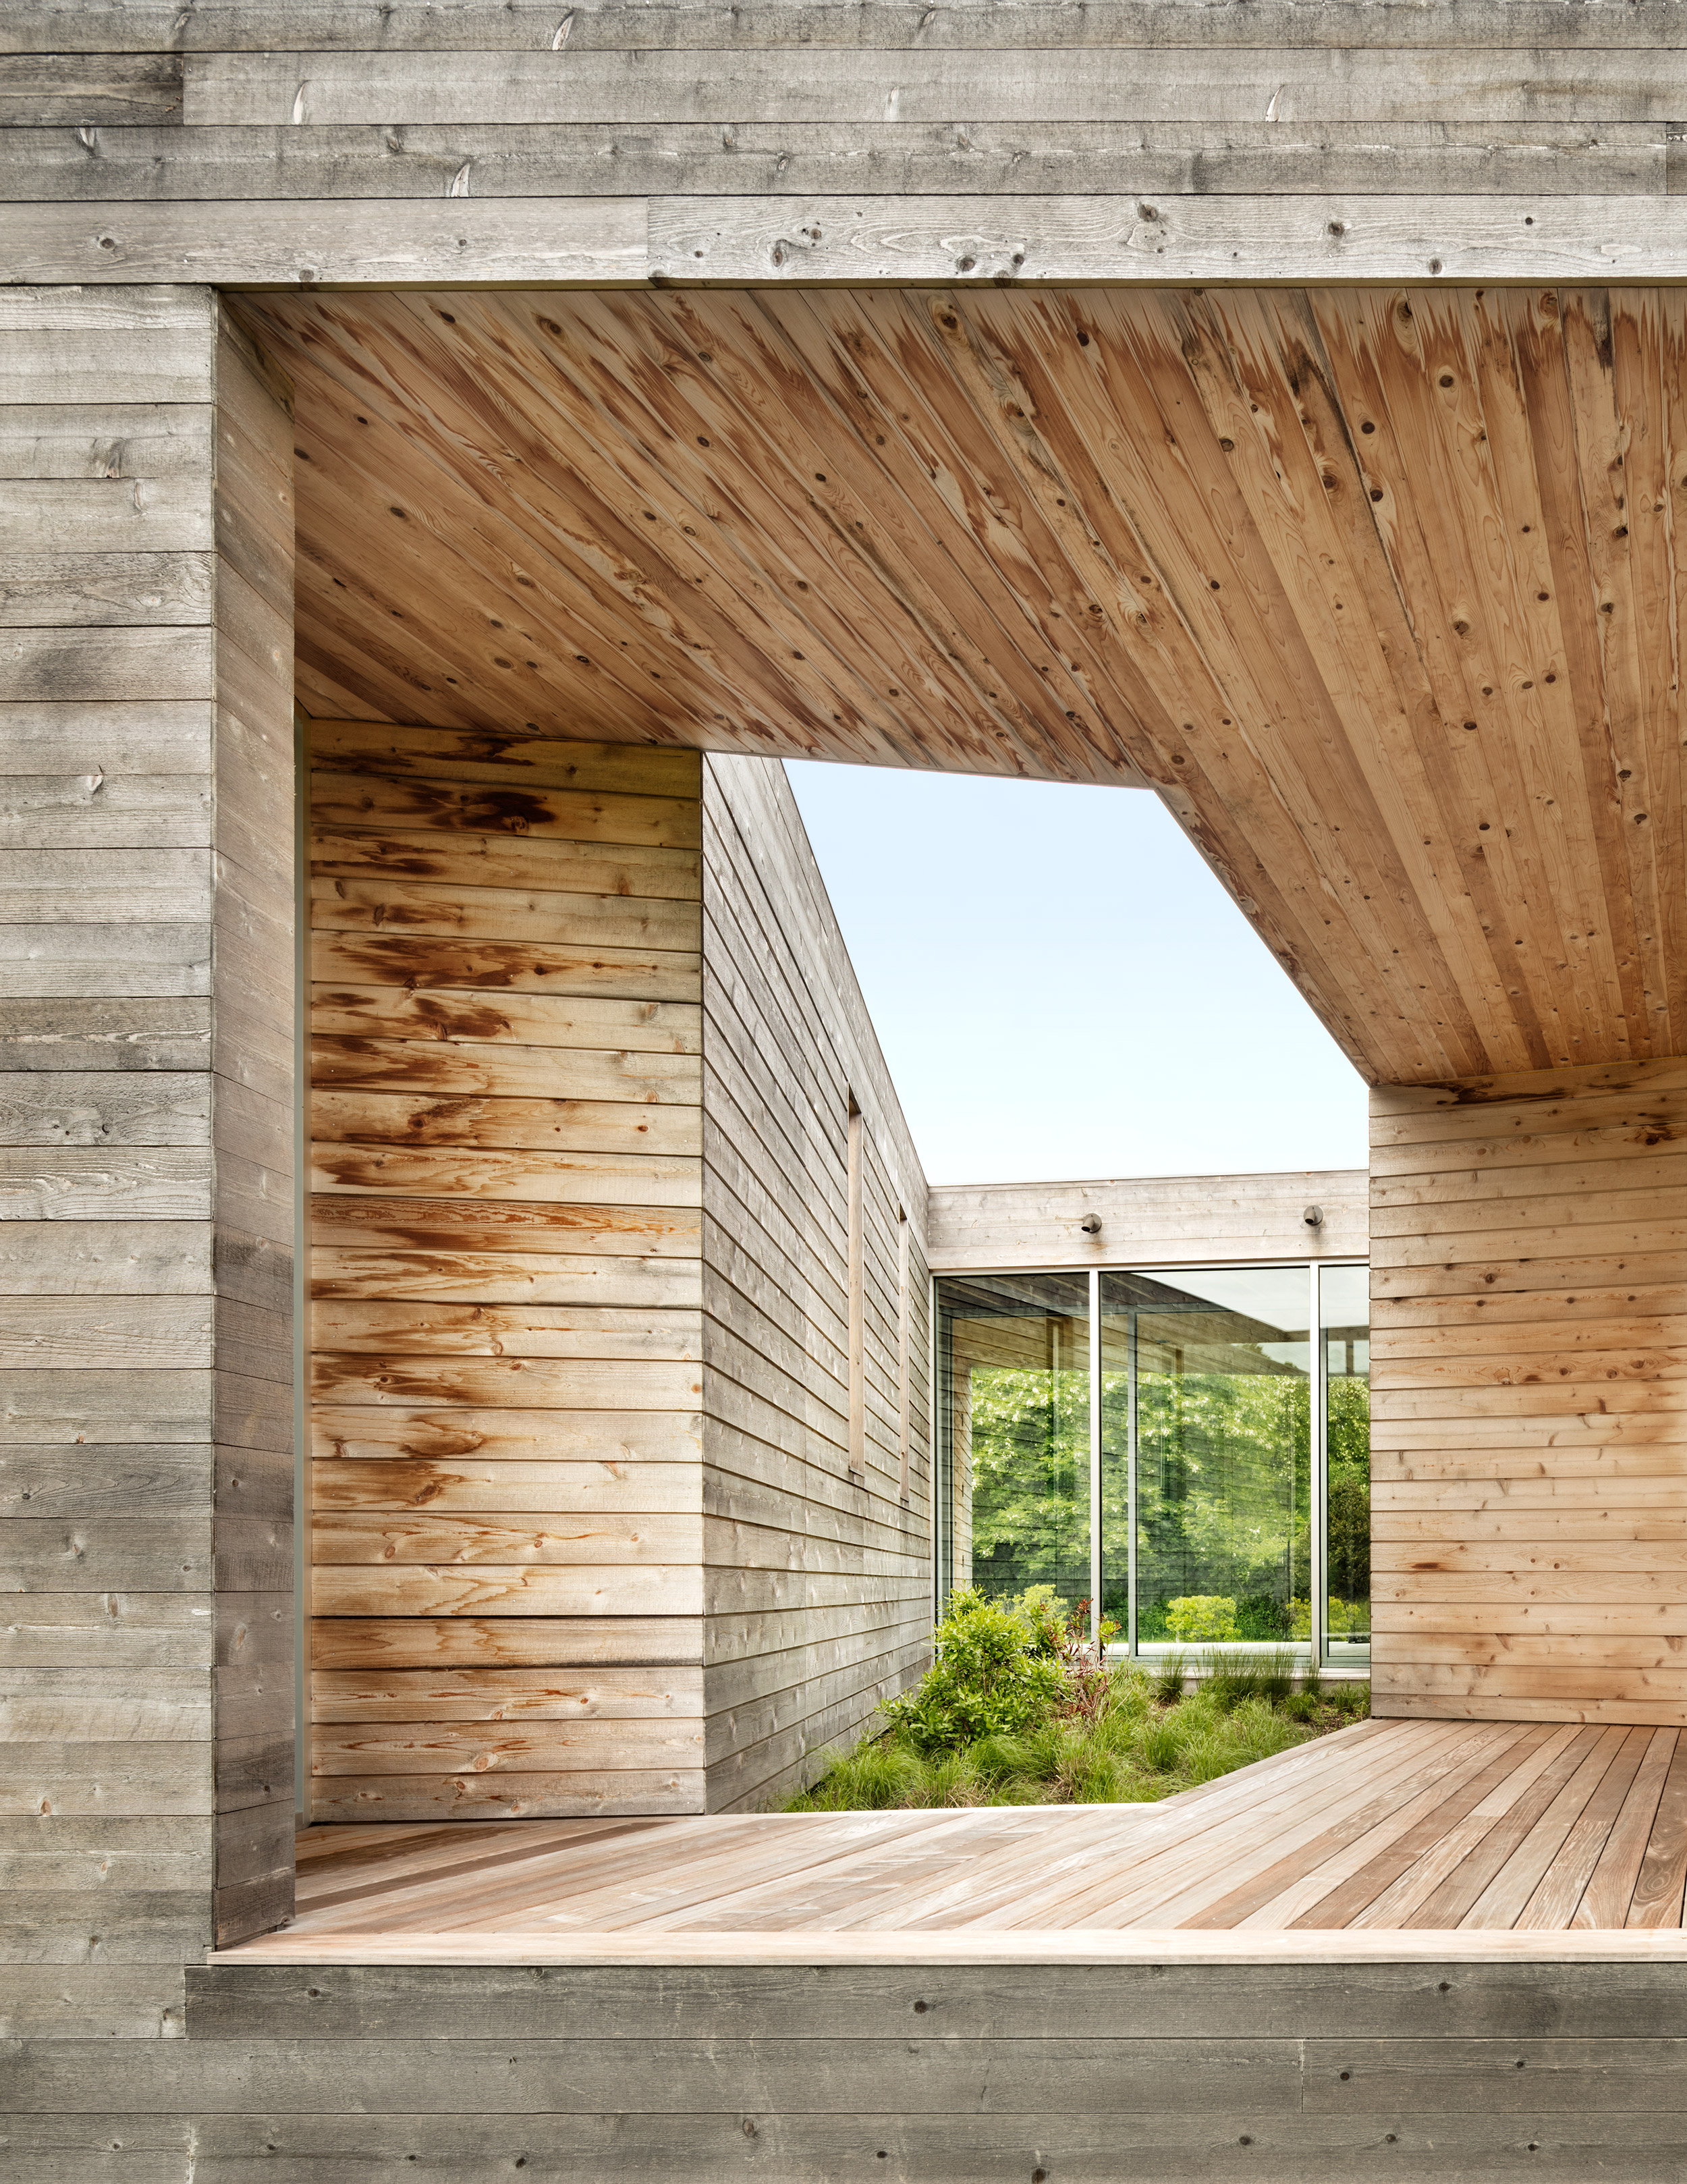 Shelter Island House by Christoff:Finio Architecture and James C. Grimes Land Design. Photo: Scott Frances.